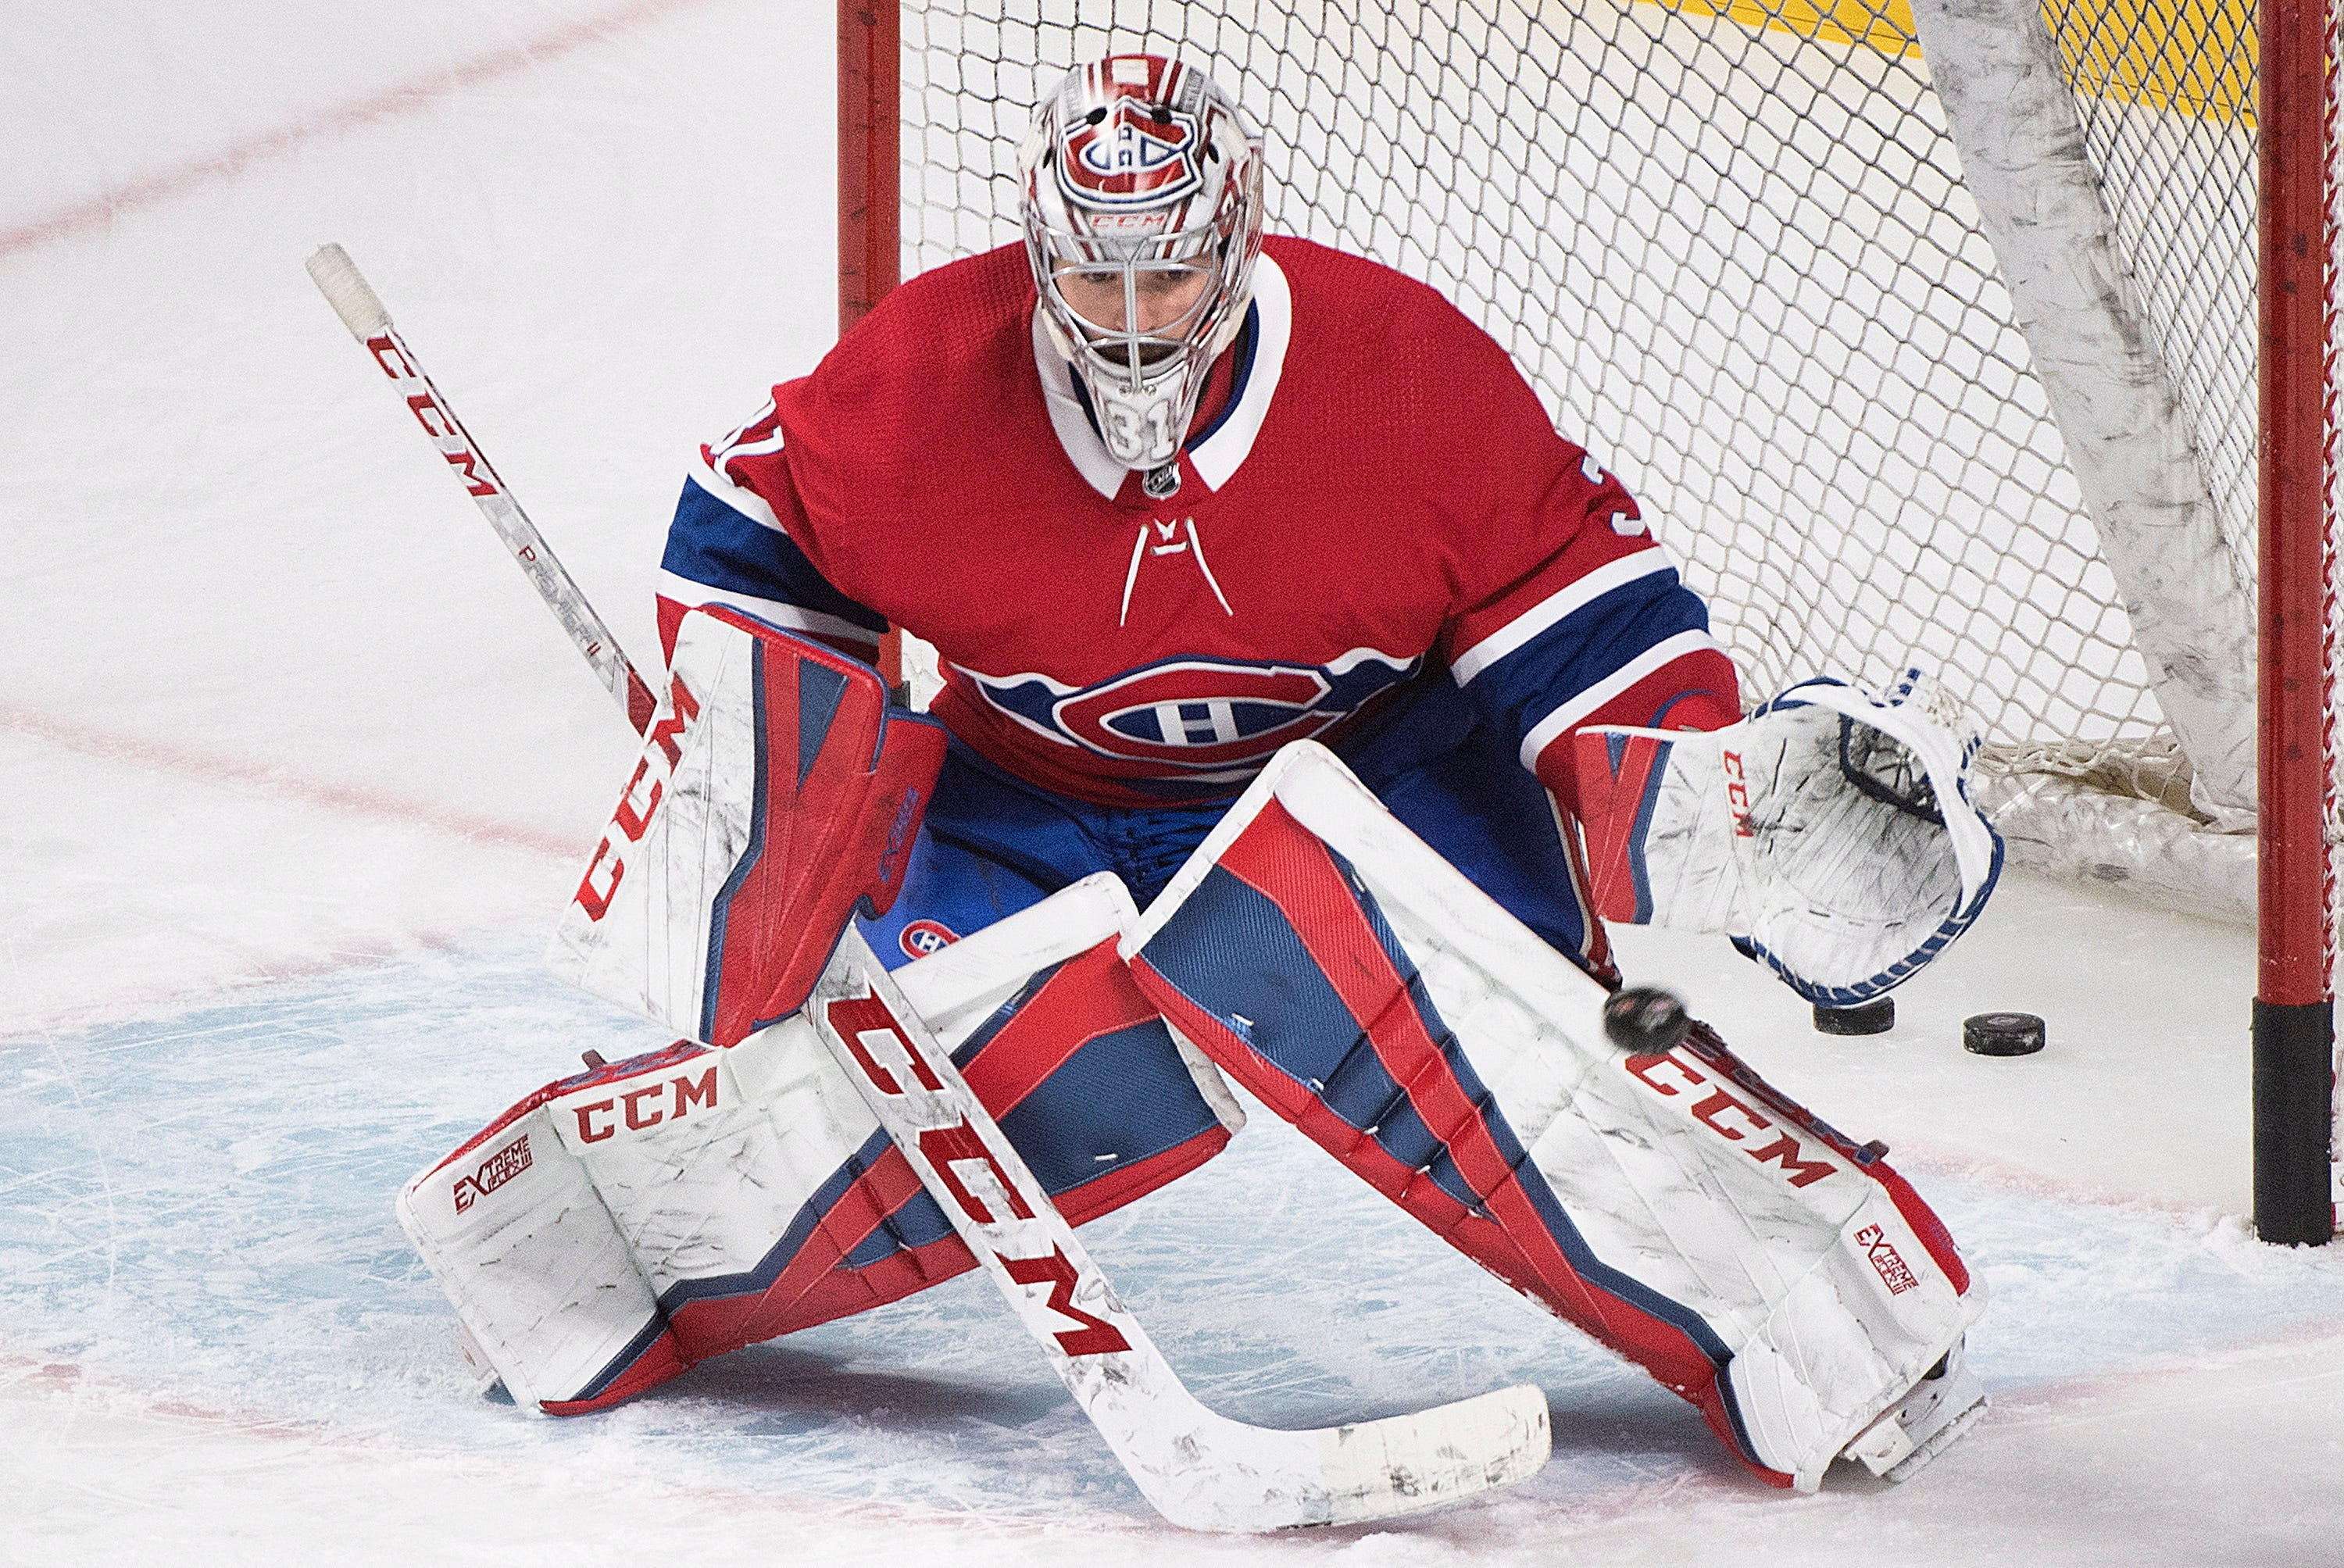 Luongo gets 3rd shutout, Panthers beat Canadiens 2-0